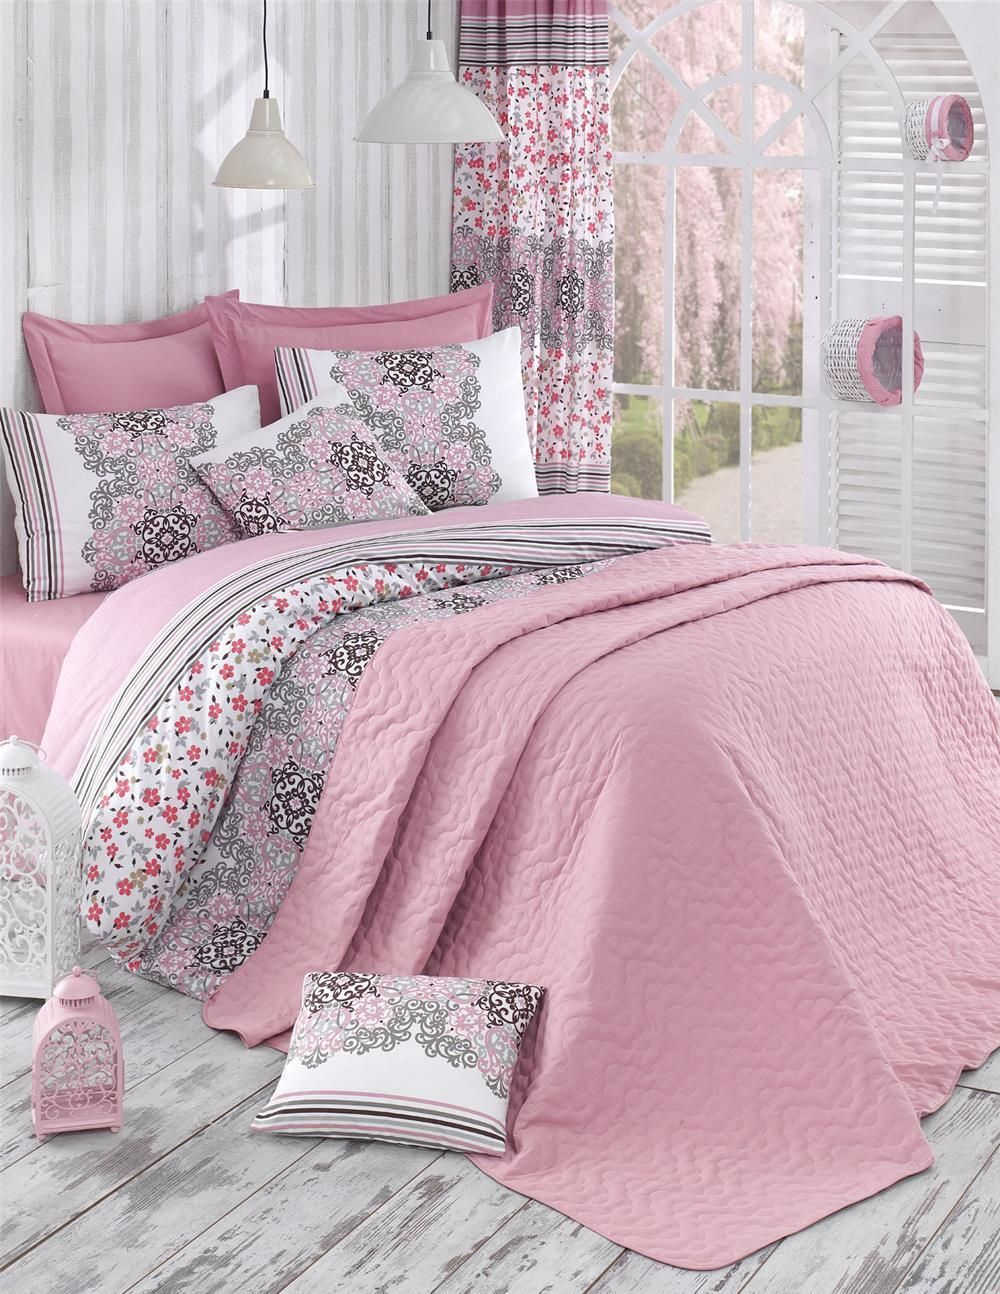 Bed linen set with bed spread